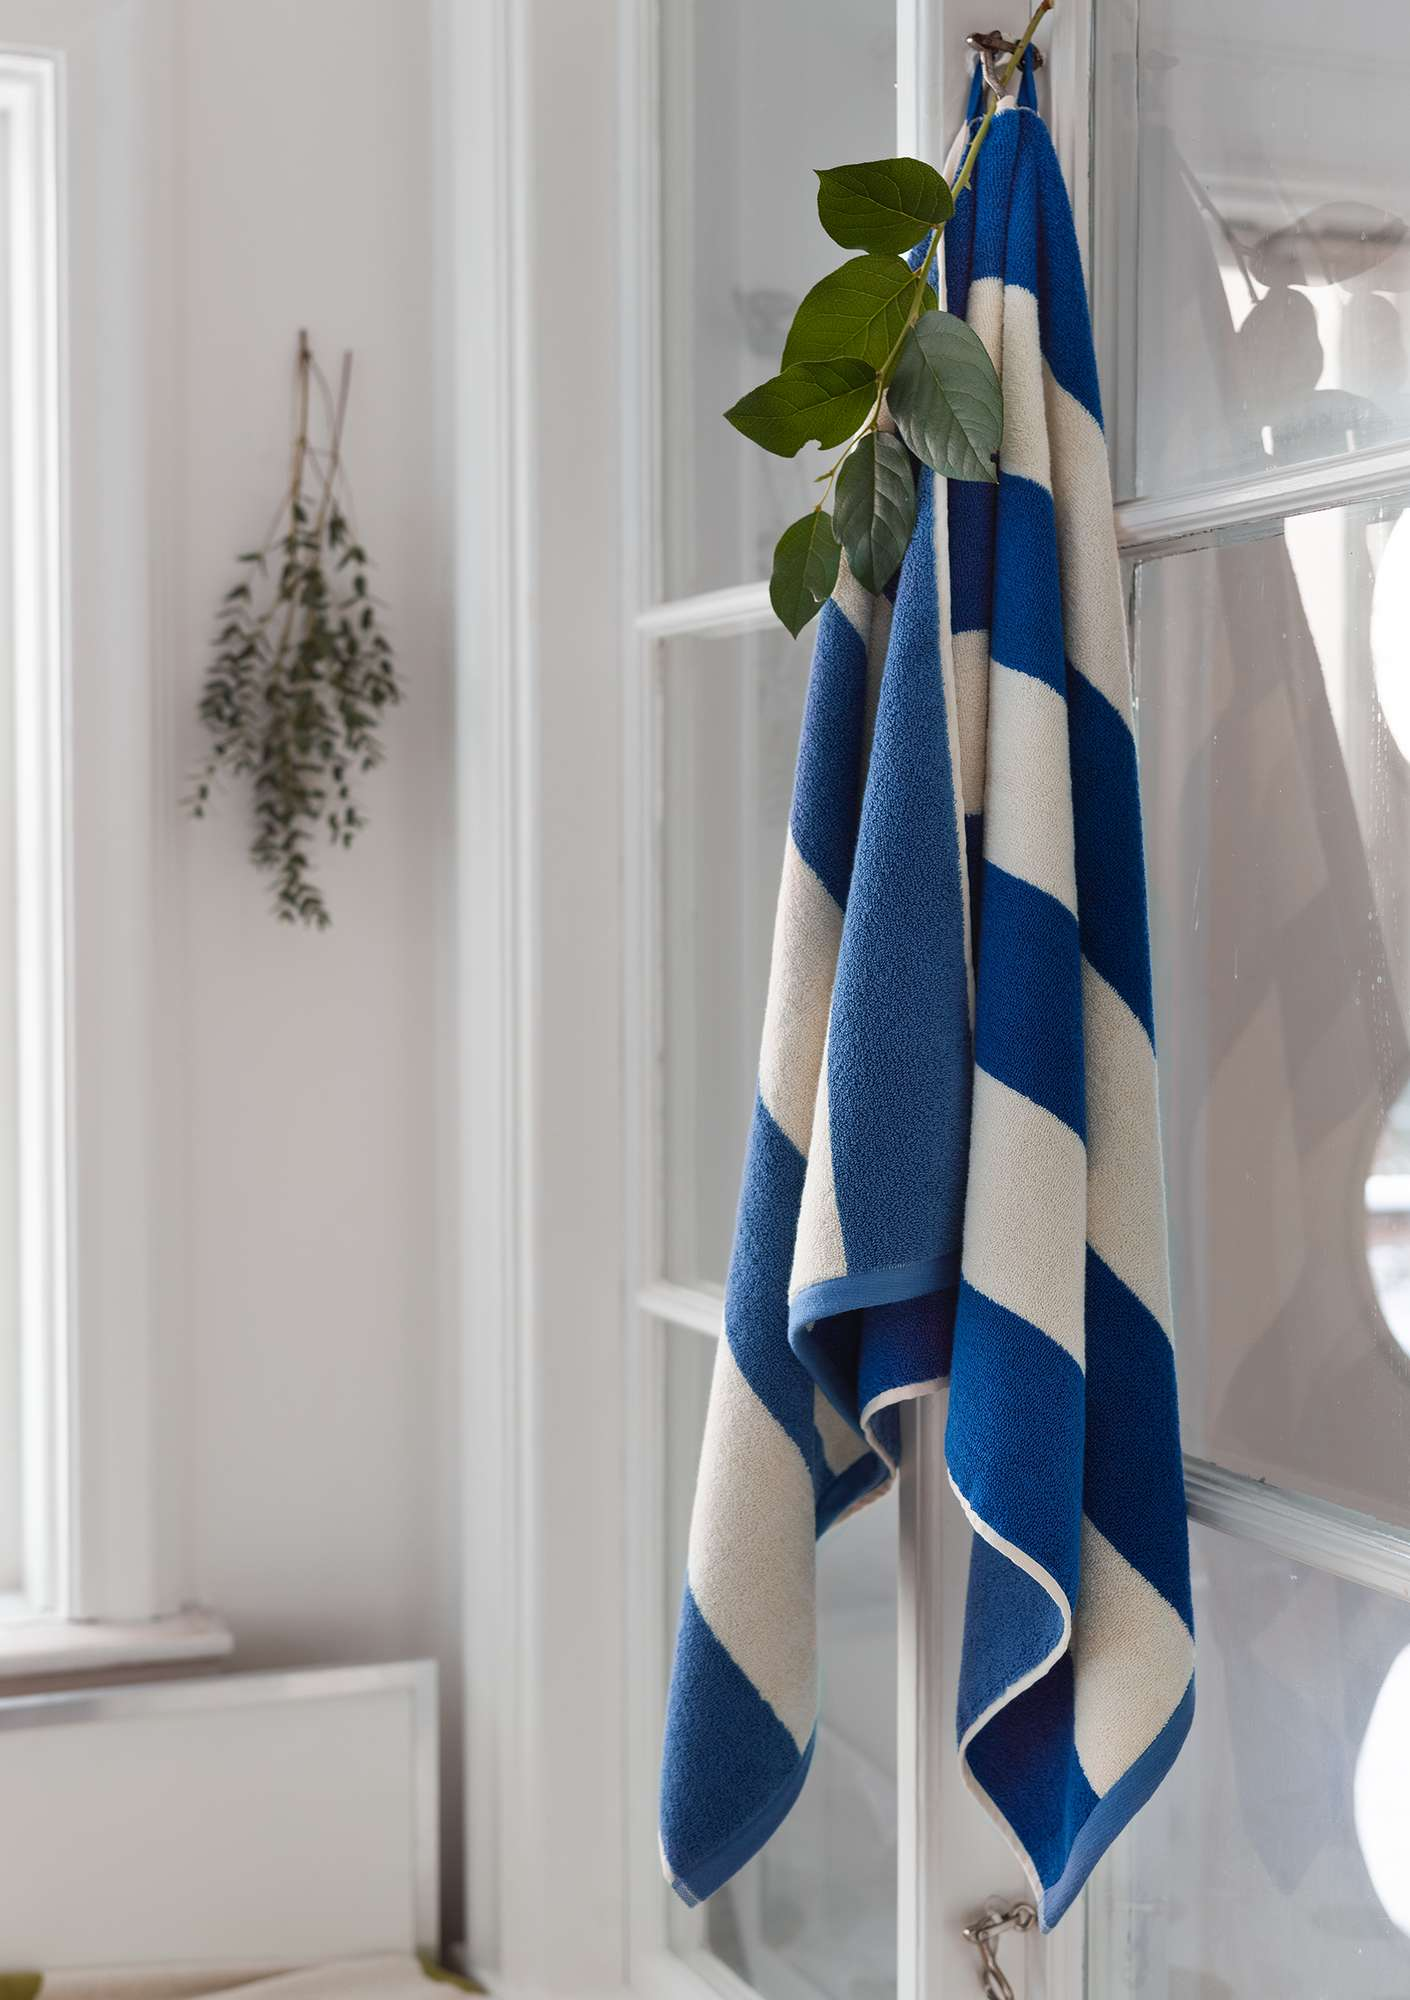 Drap de douche Stråla light indigo